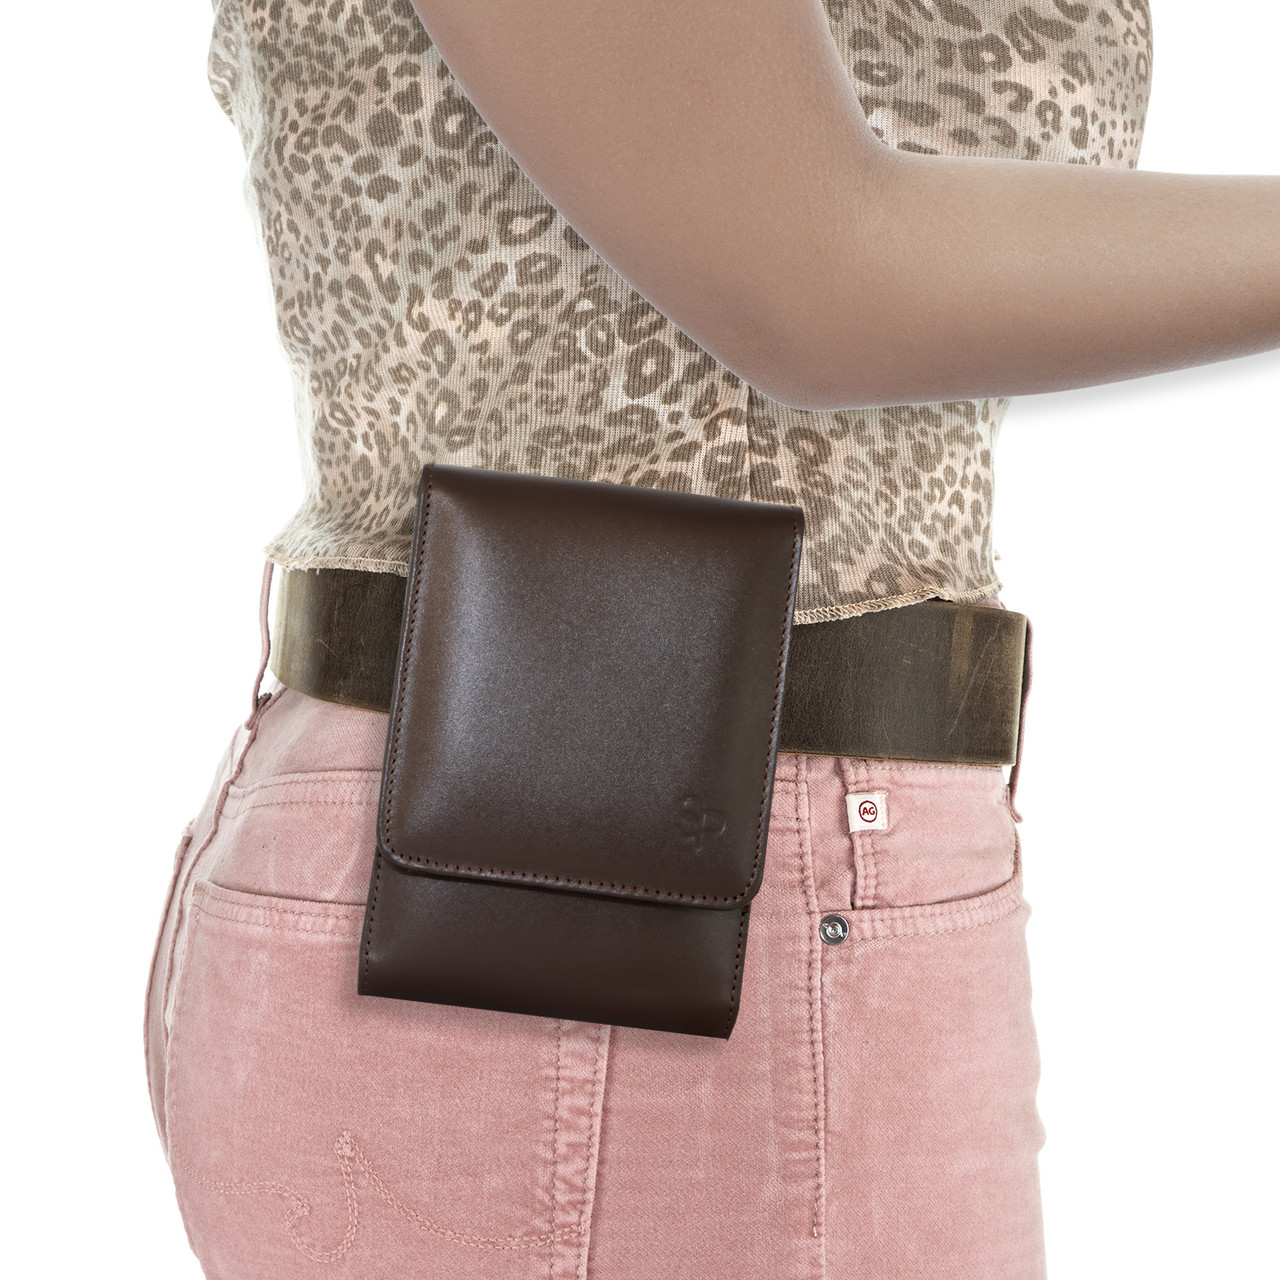 Glock 43X Brown Leather Series Holster